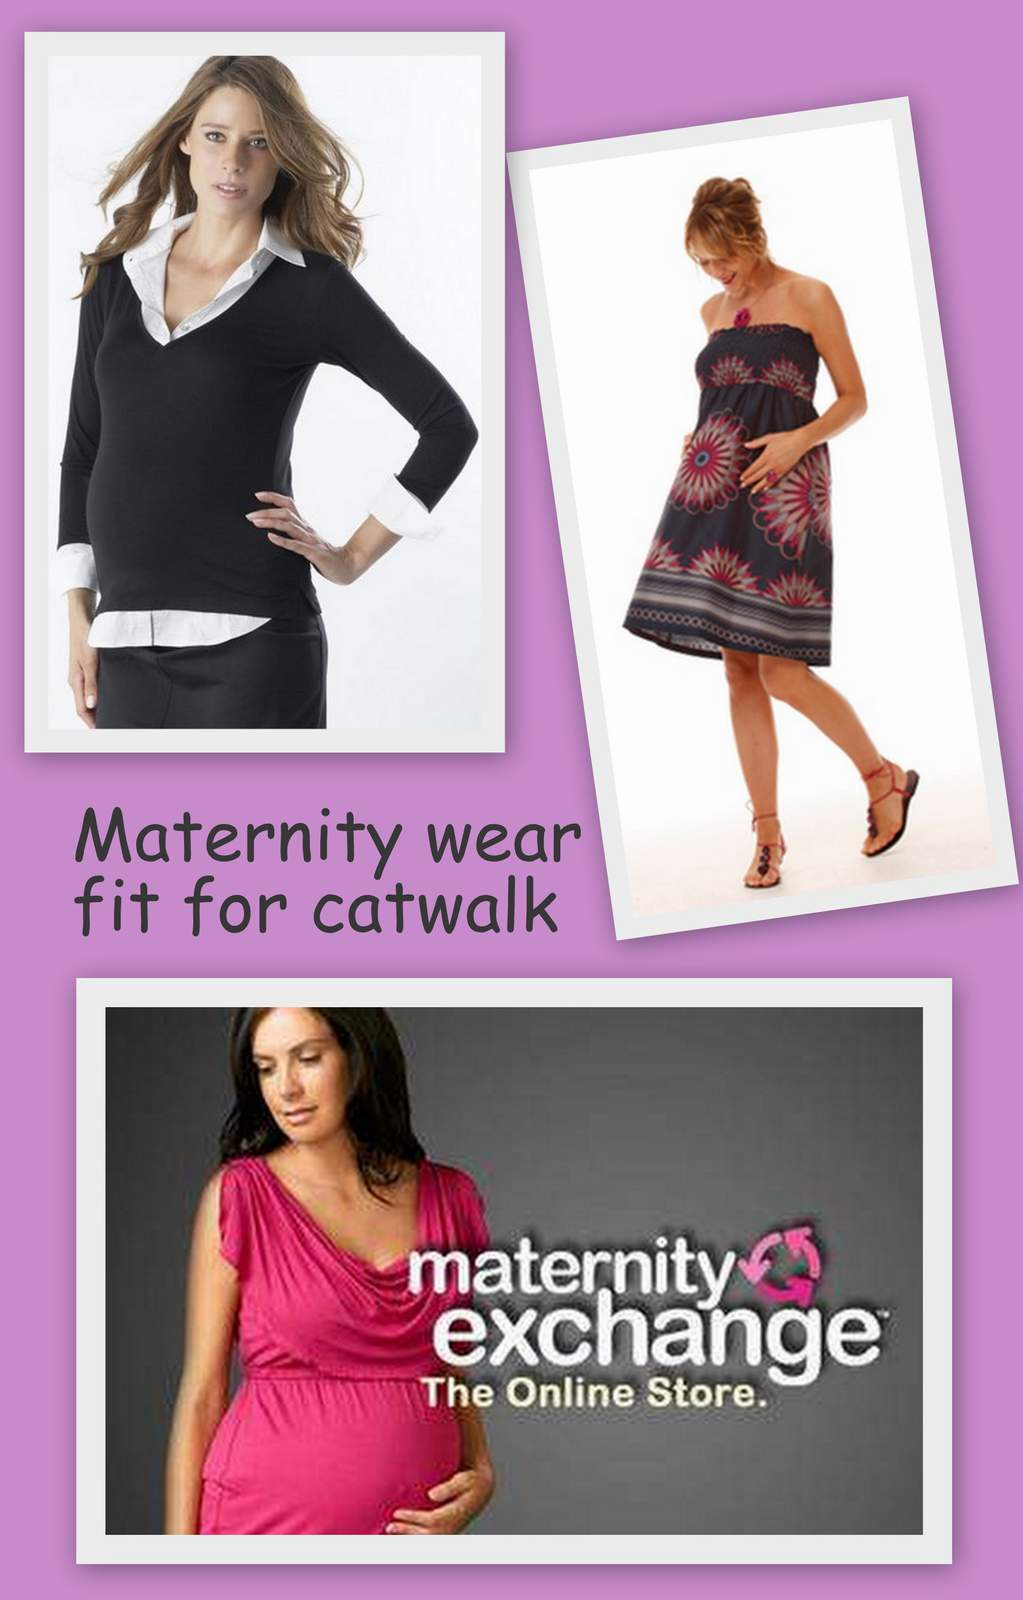 Sengkangbabies maternity exchange mx rent your maternity oufits we might be clueless about buying pads not the apple ipad or victorias secret for our woman but we can at least boast about maternity wear rental p ombrellifo Choice Image